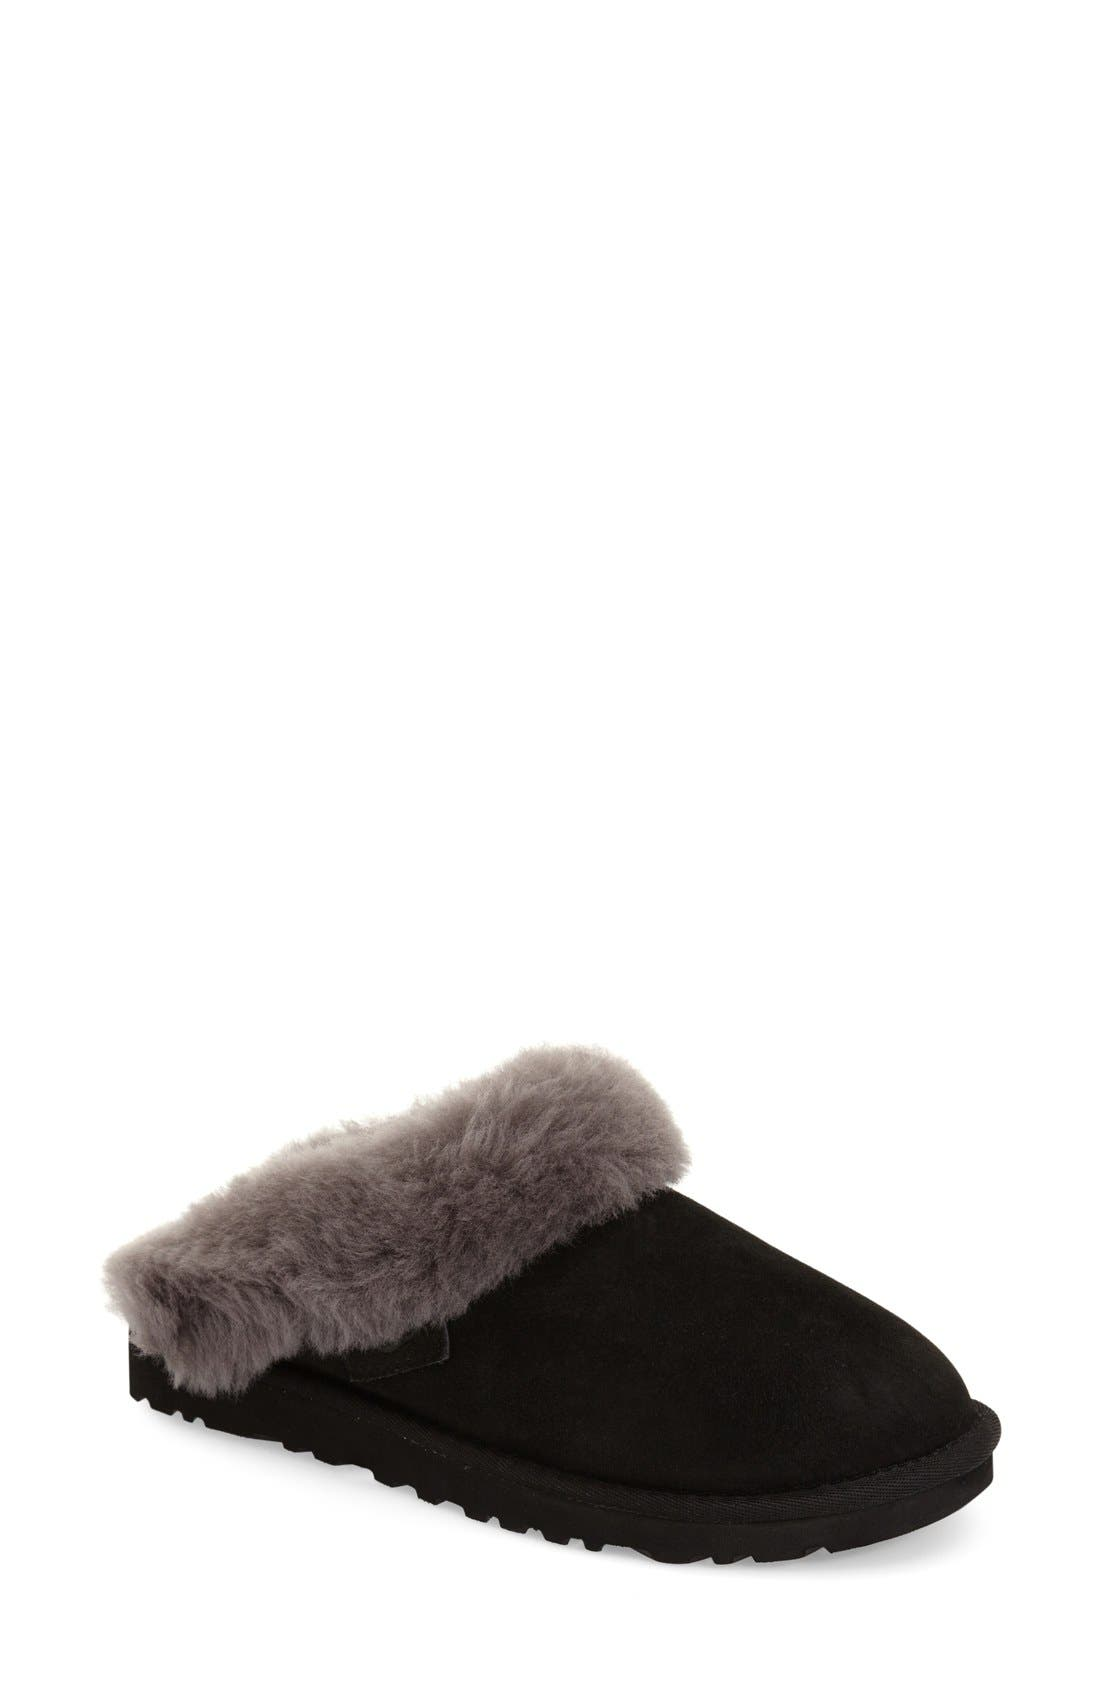 'Cluggette' Genuine Shearling Indoor/Outdoor Slipper,                             Main thumbnail 1, color,                             001